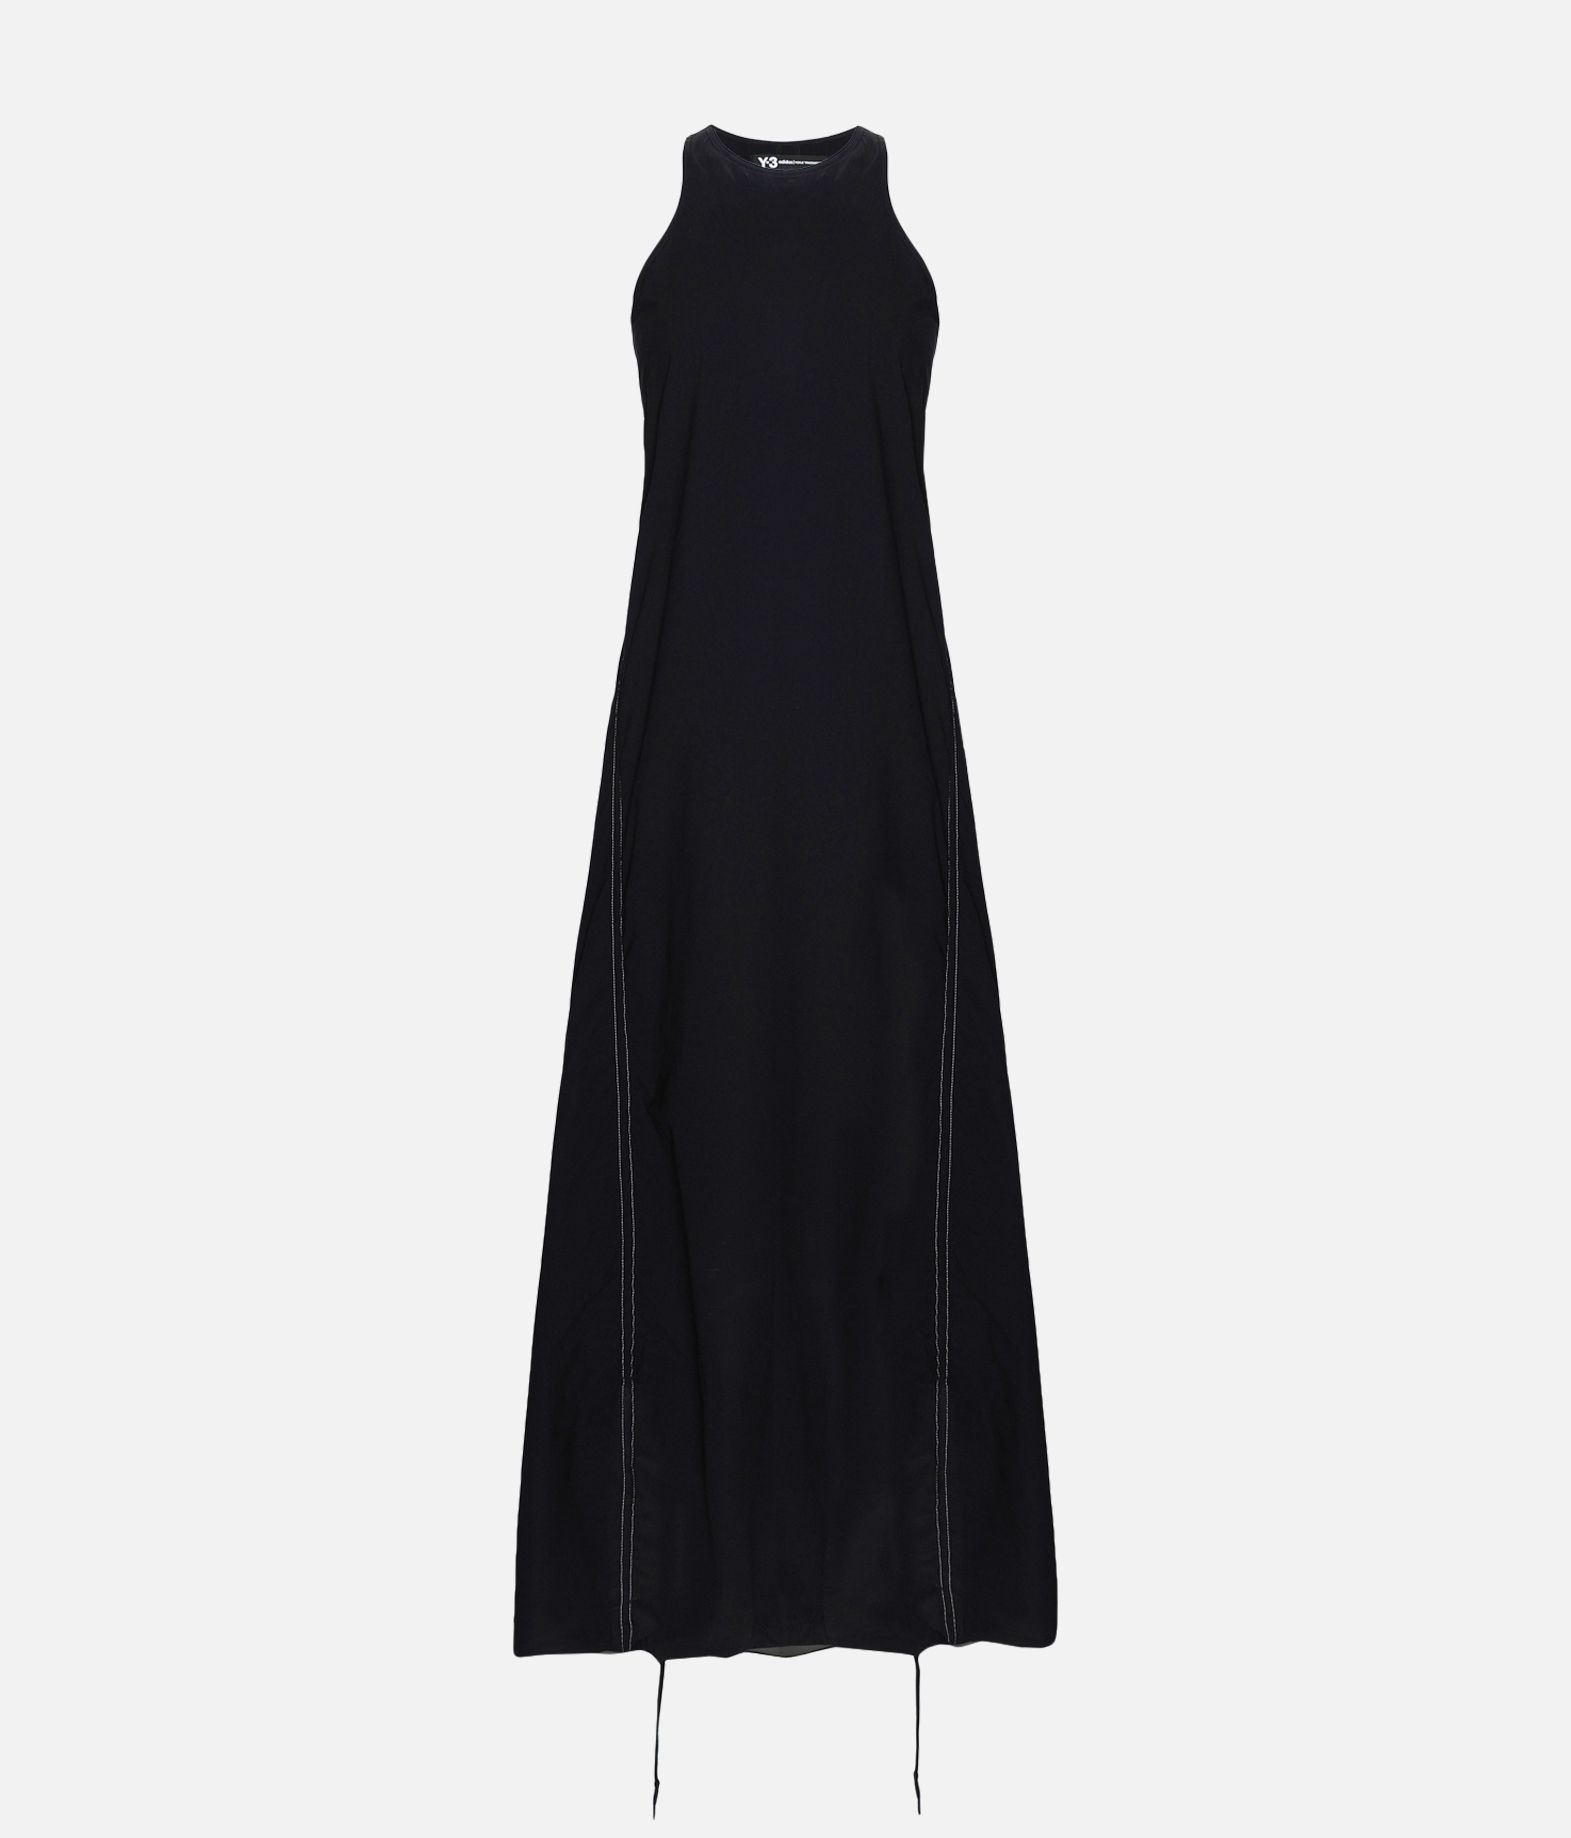 Y-3 Y-3 Light 3-Stripes Dress Dress Woman f